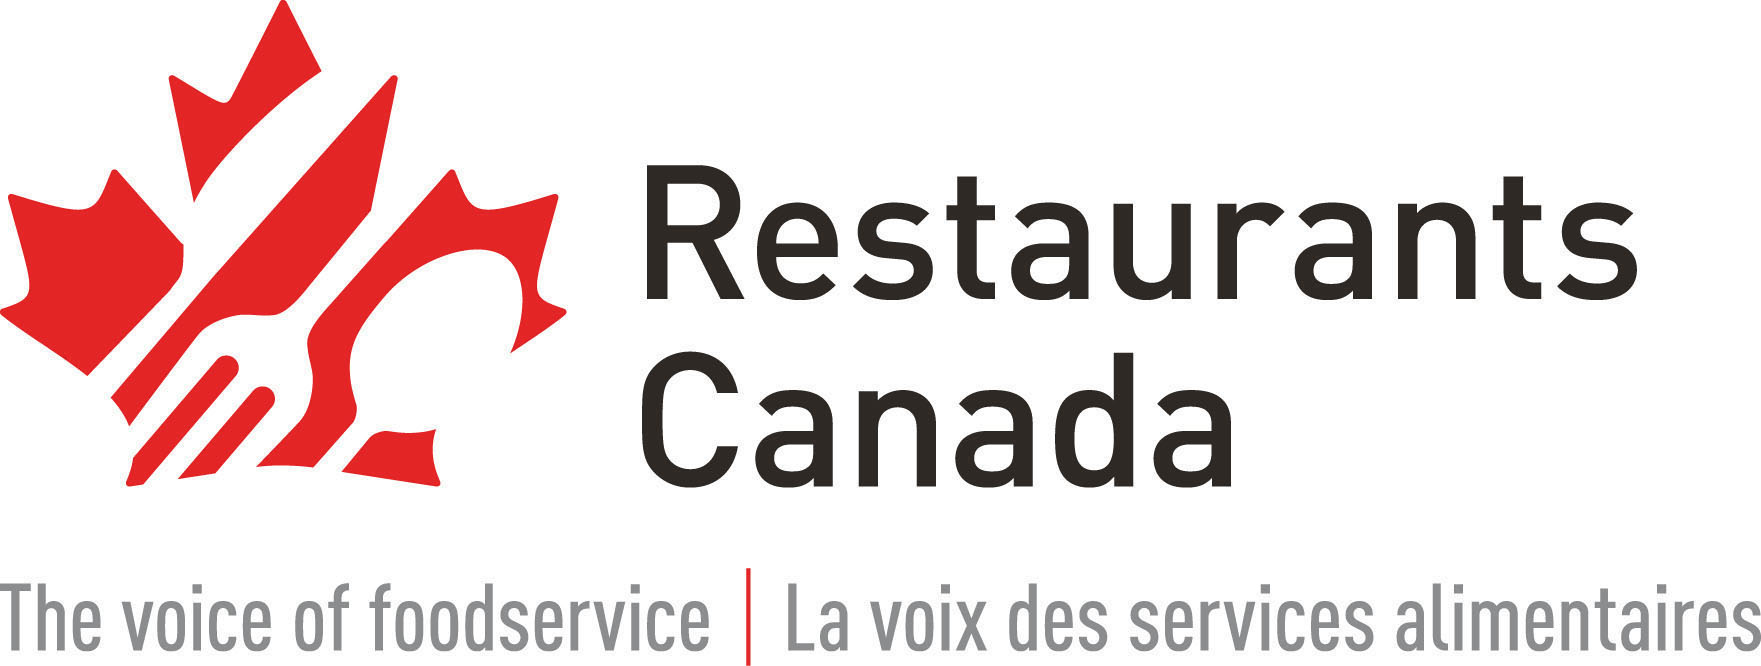 COVID-19 has cost Ontario's foodservice sector more than 300,000 jobs since March 1